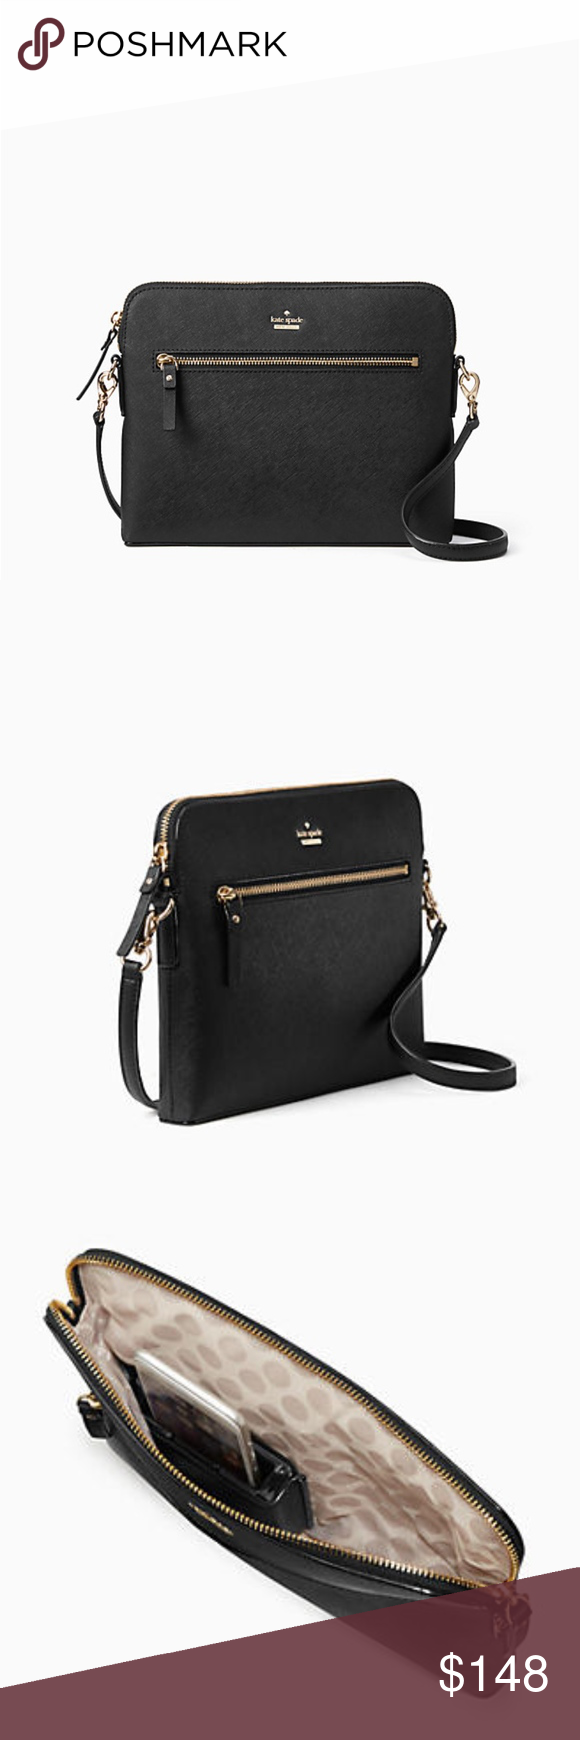 dd14381a77c1 NEW Kate Spade Phone Charging Everpurse X Zana This purse gives you all the  power!